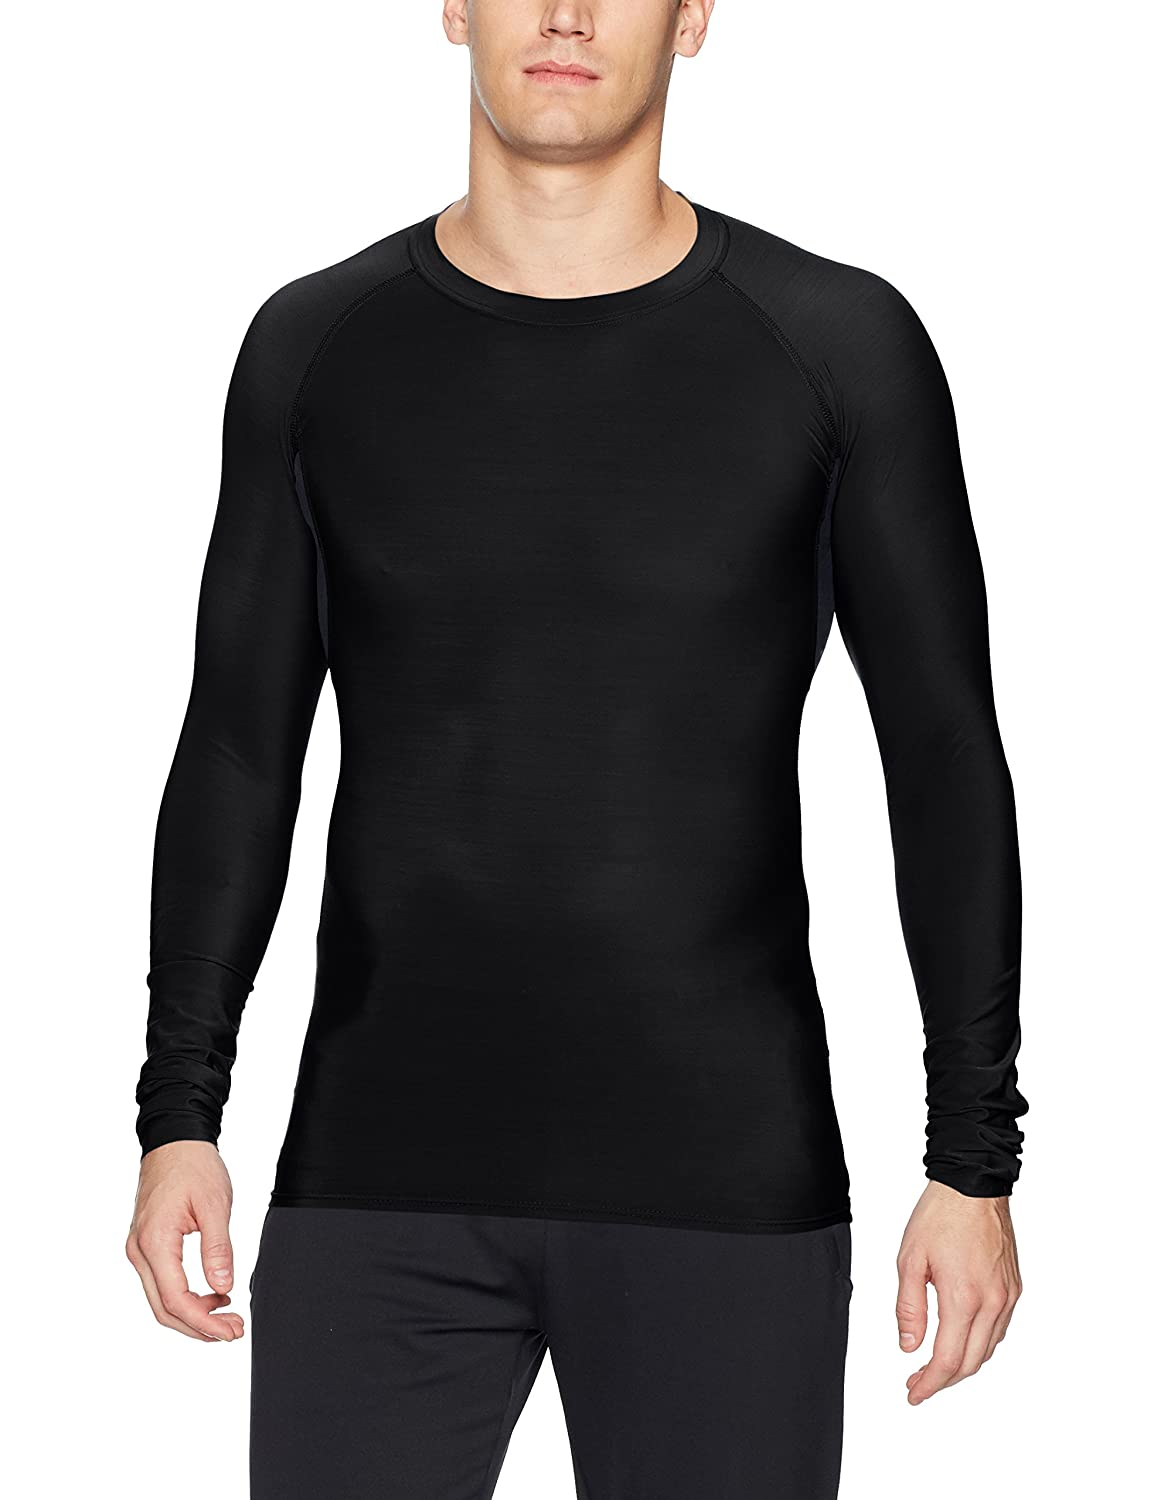 aebad91b Top 10 wholesale Mens Long Sleeve Dri Fit Shirts - Chinabrands.com